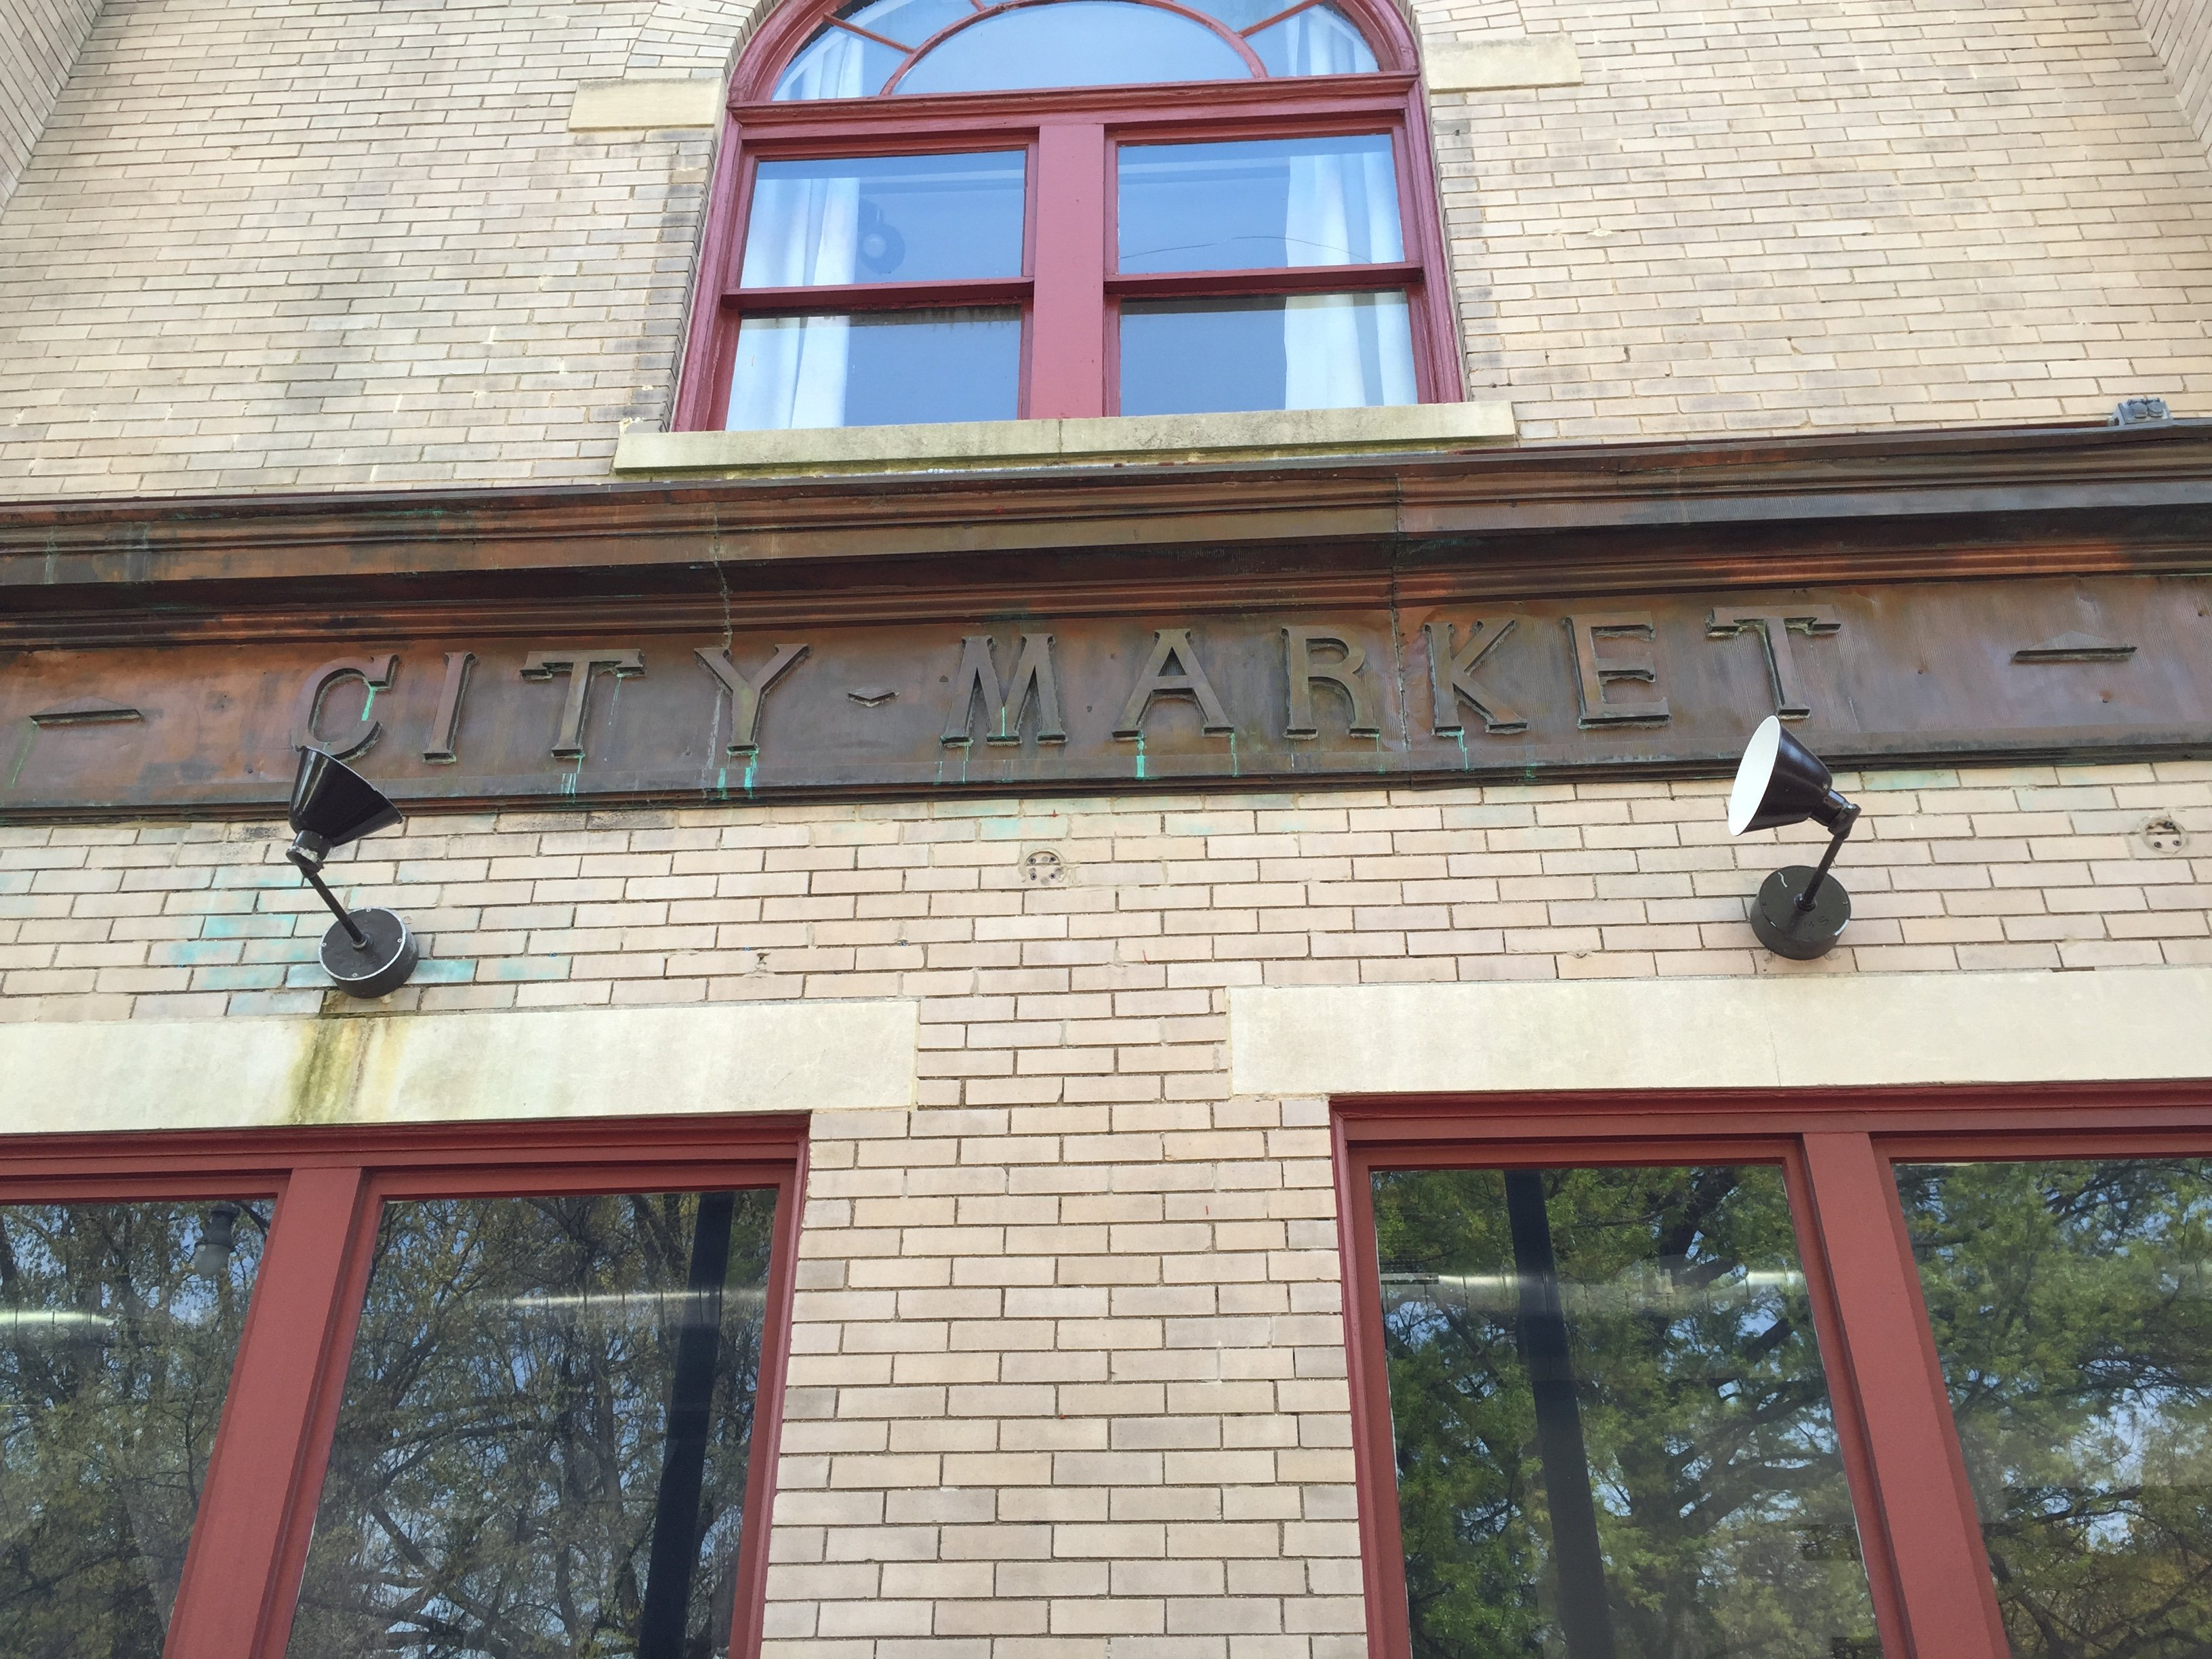 Photo of the City Market entrance